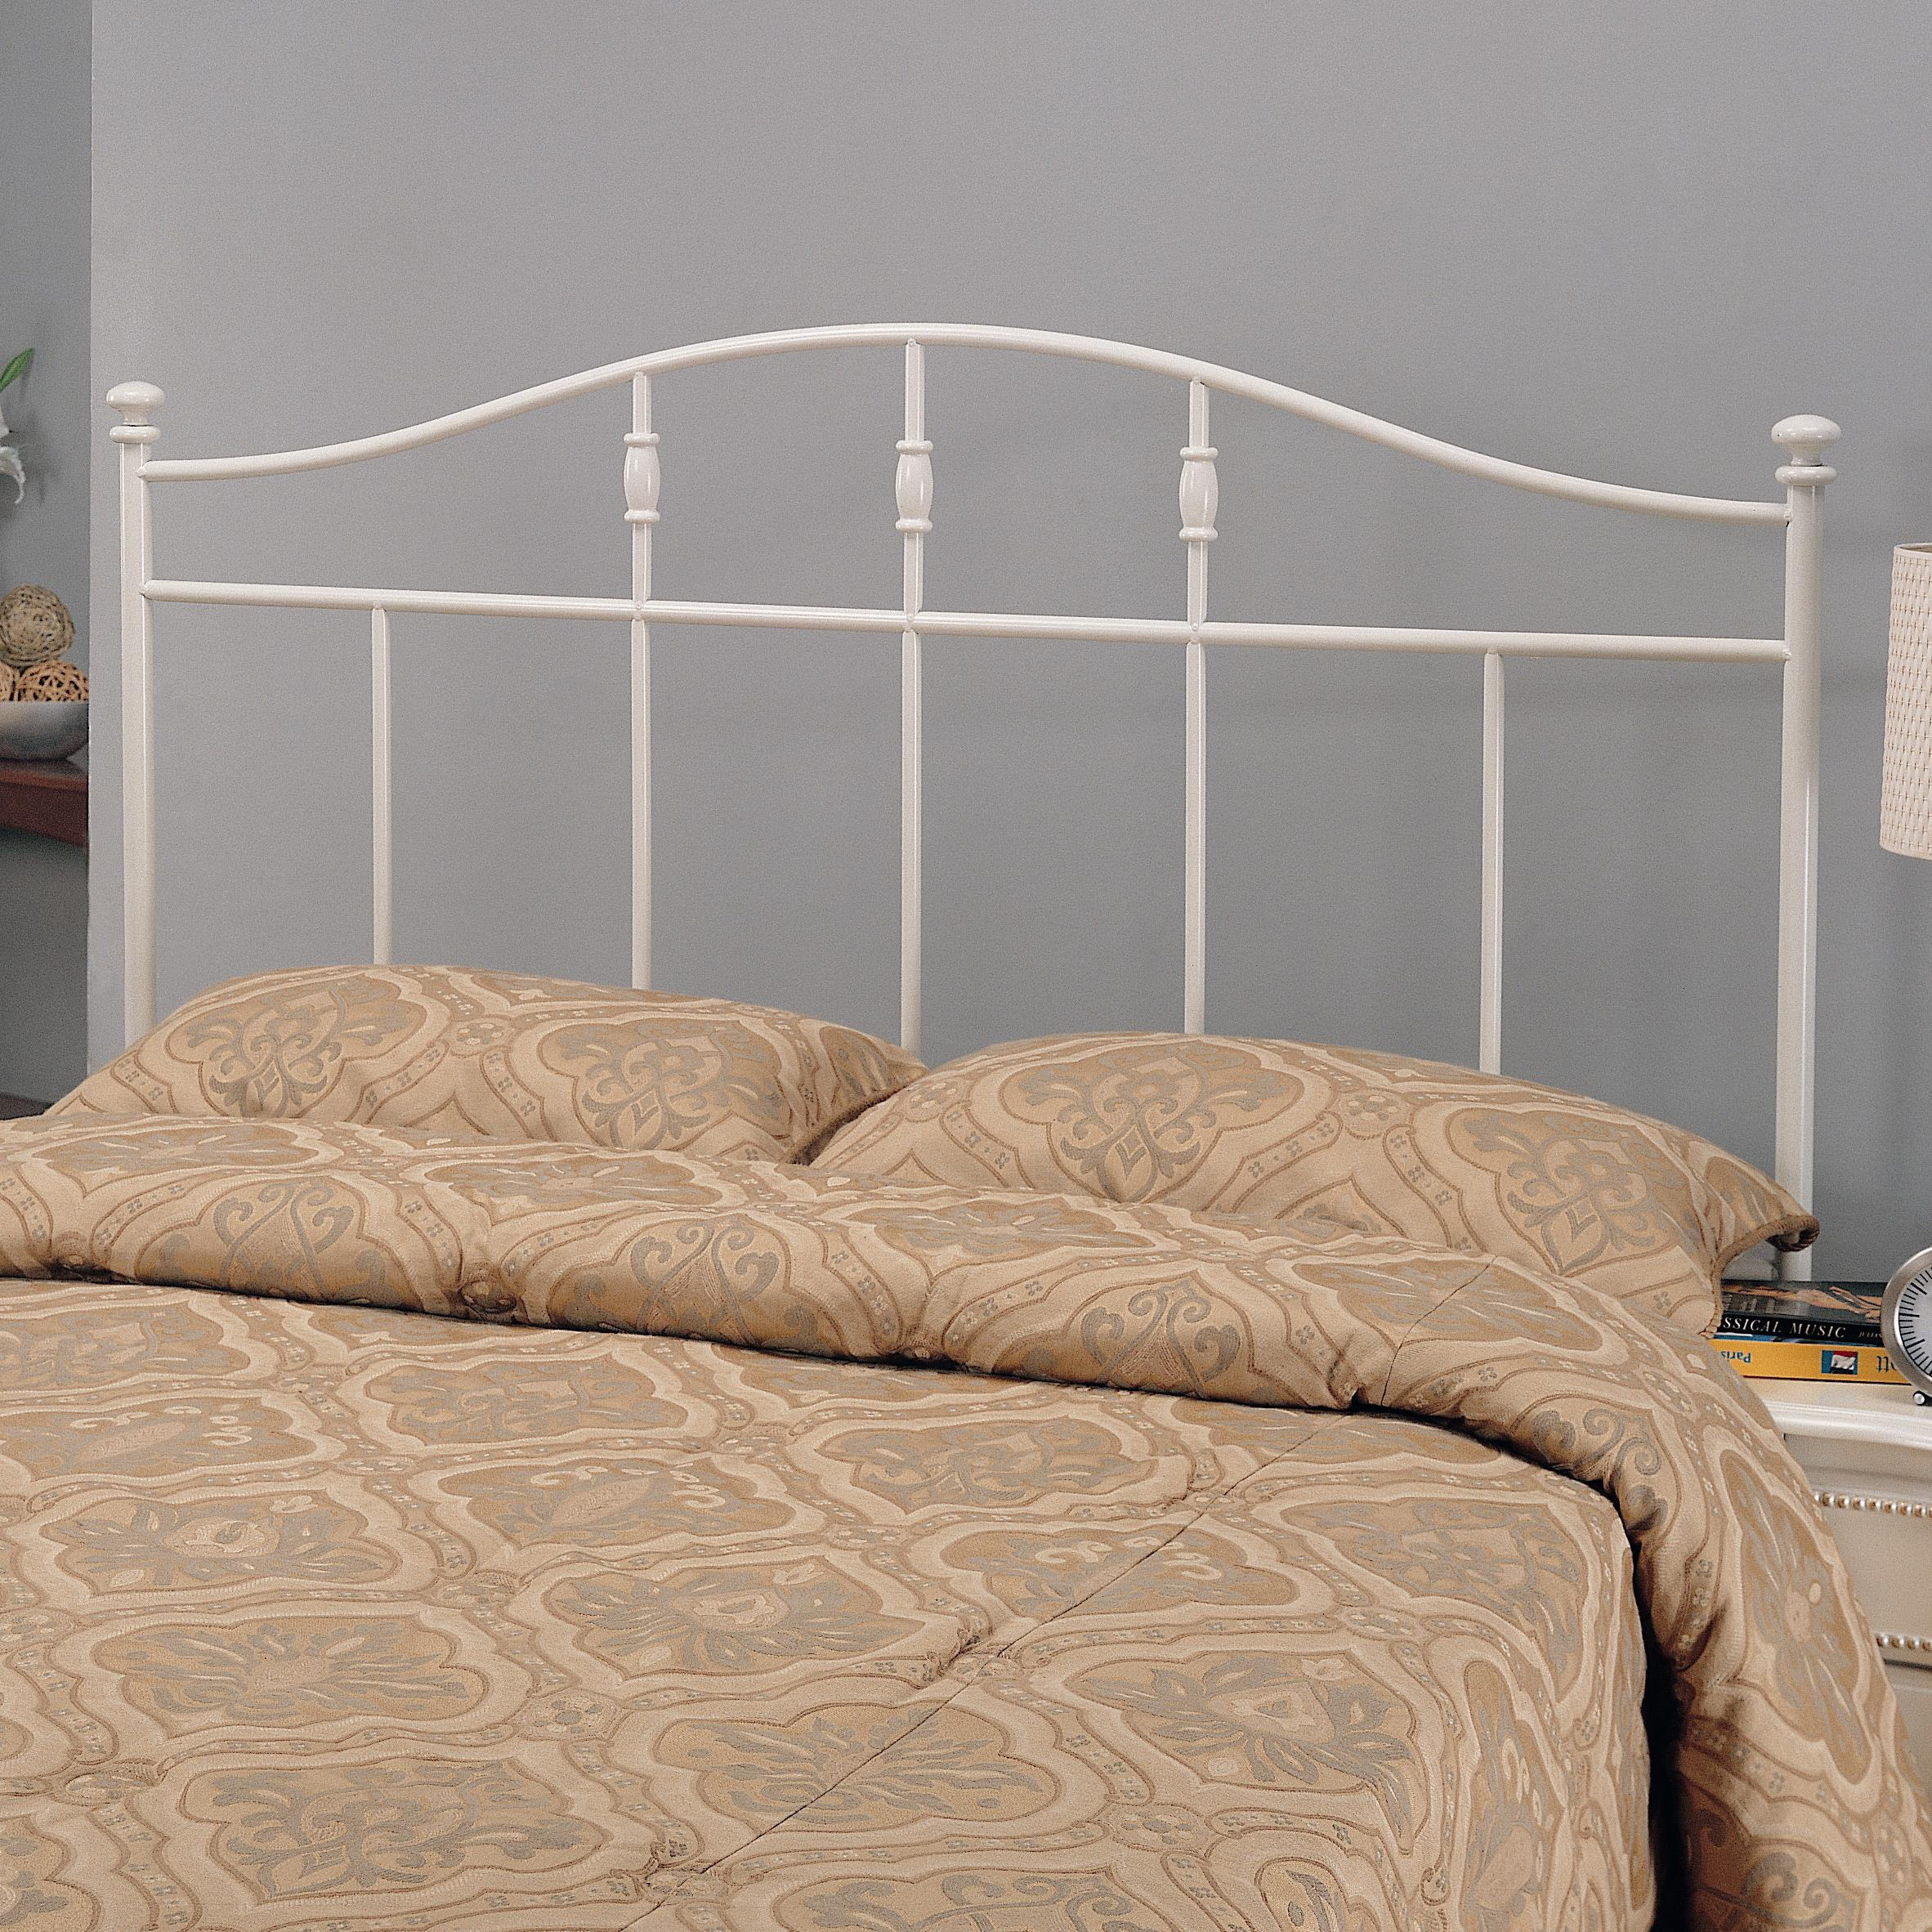 Bed Headboard Iron Beds And Headboards Full Queen Cottage White Metal Headboard By Coaster At Dunk Bright Furniture